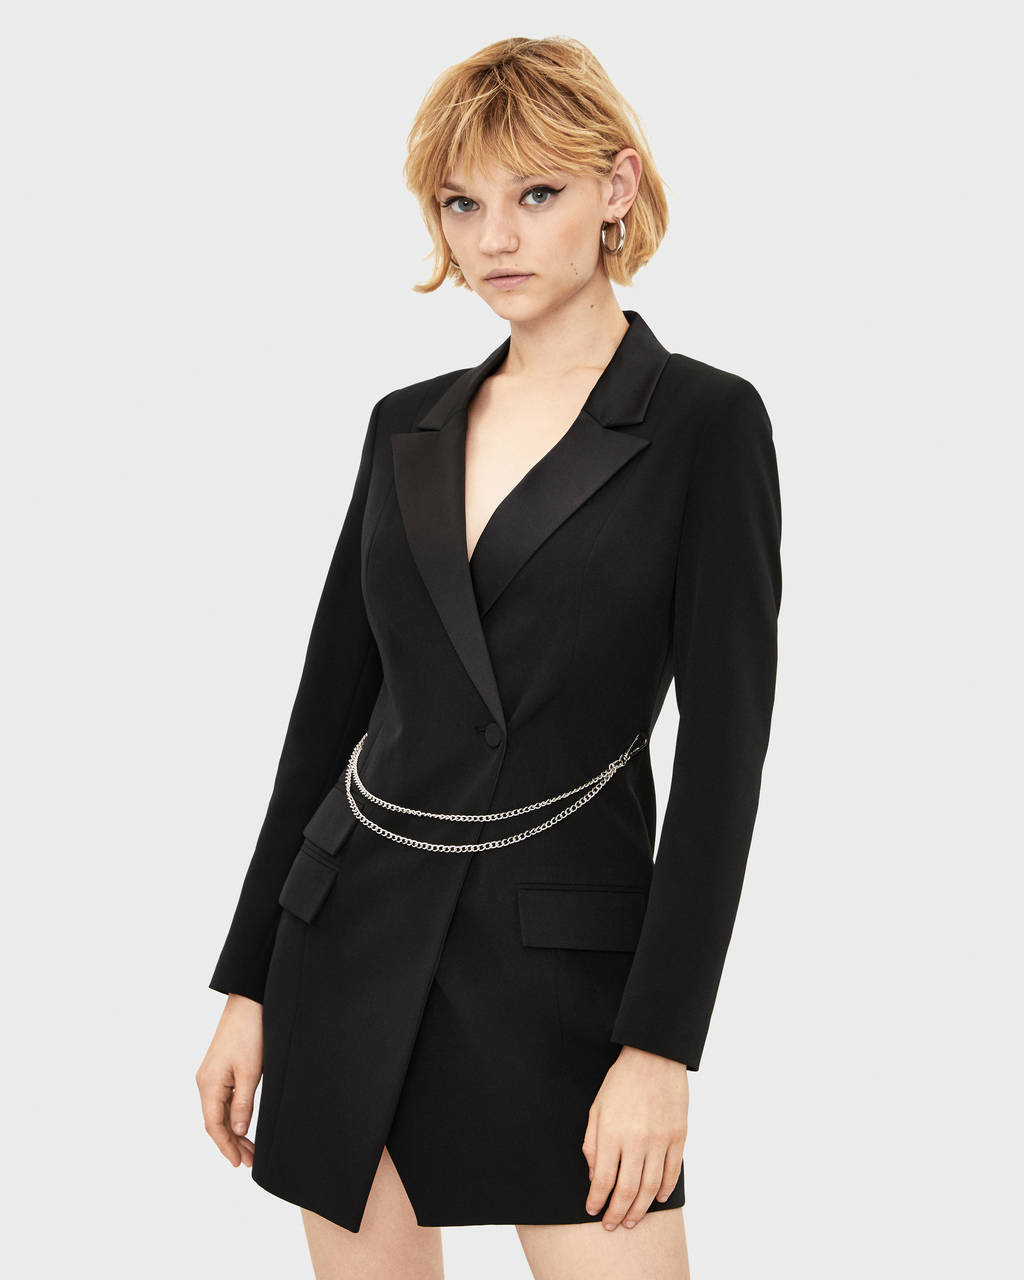 Blazer-style dress with chain